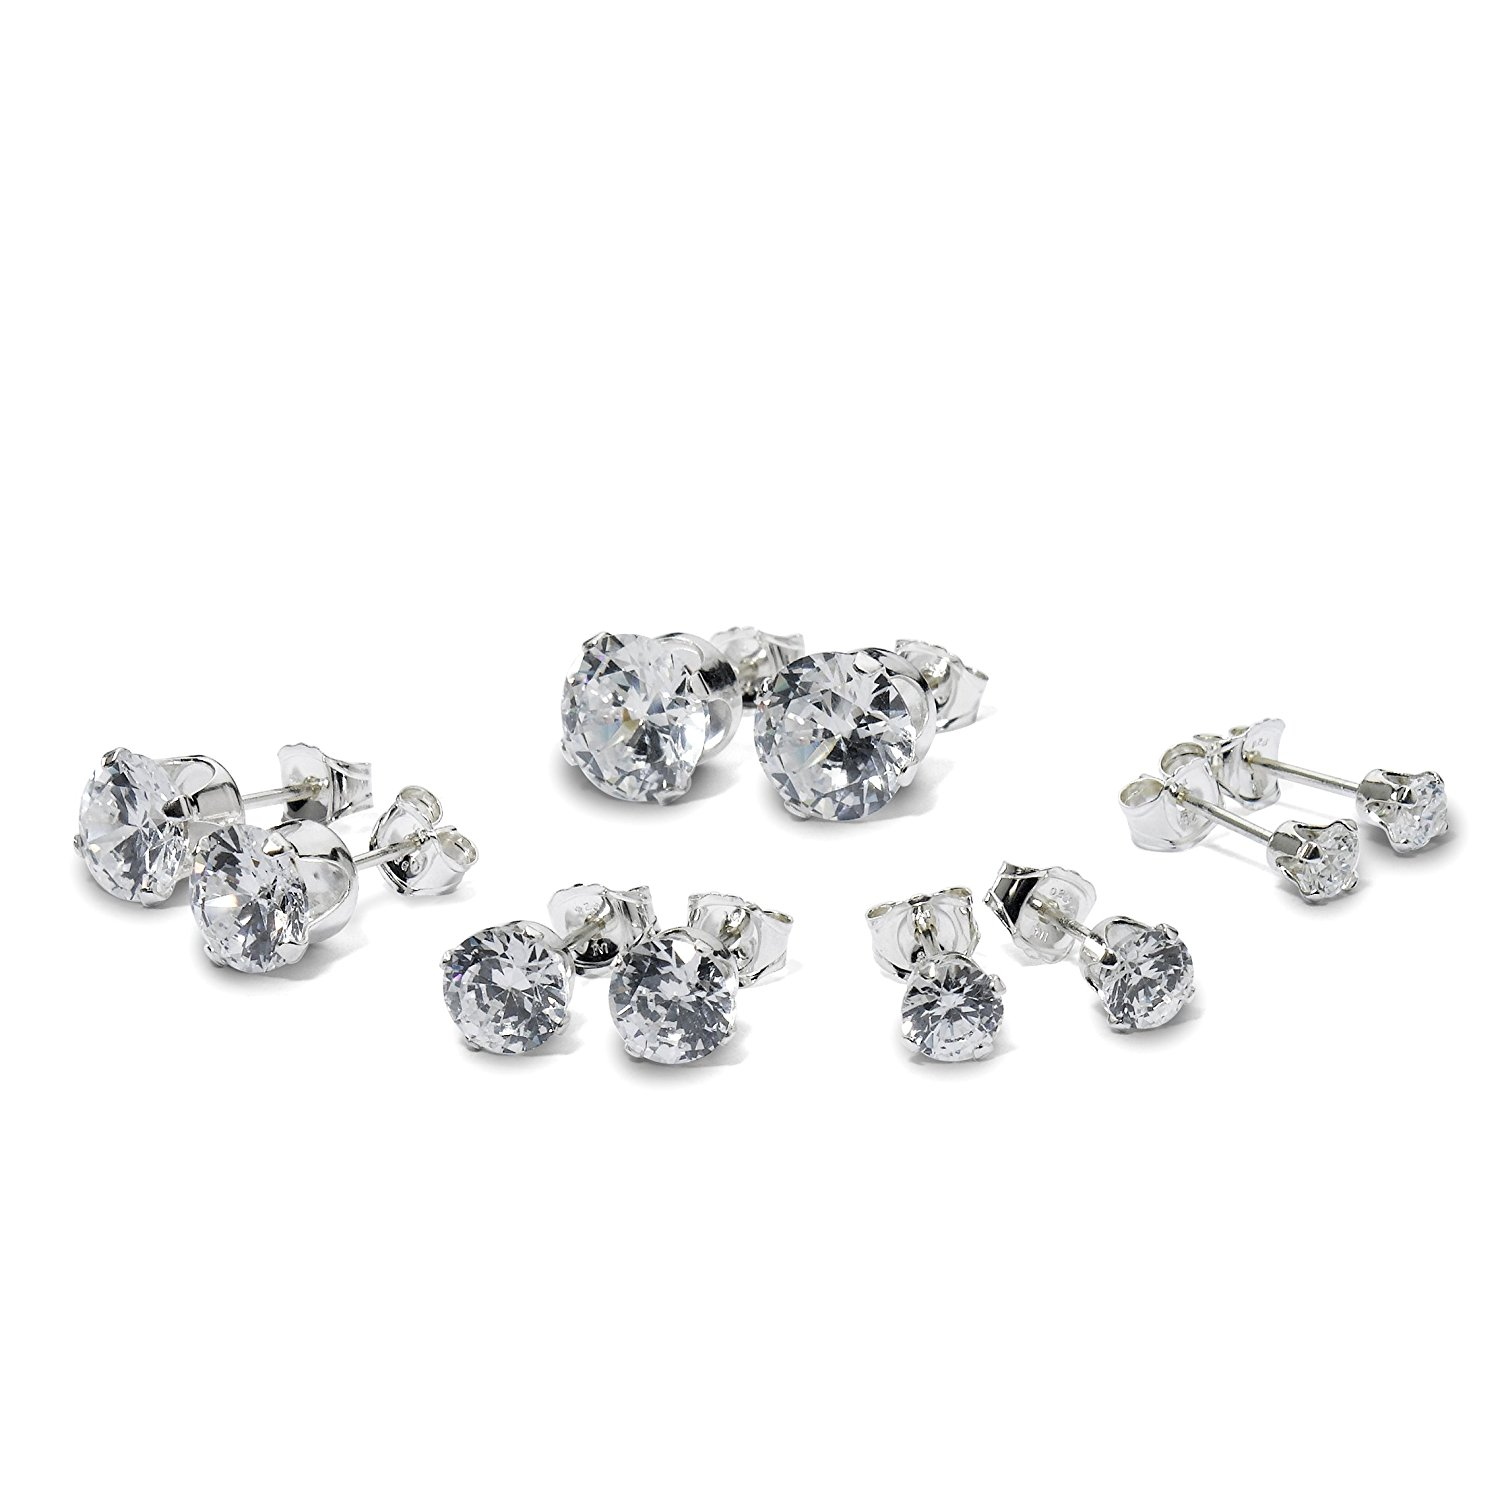 72c44ad55 CZ Stud Earrings Sterling Silver - Cubic Zirconia Jewelry Five Pair Set  Sizes 3mm 4mm 5mm